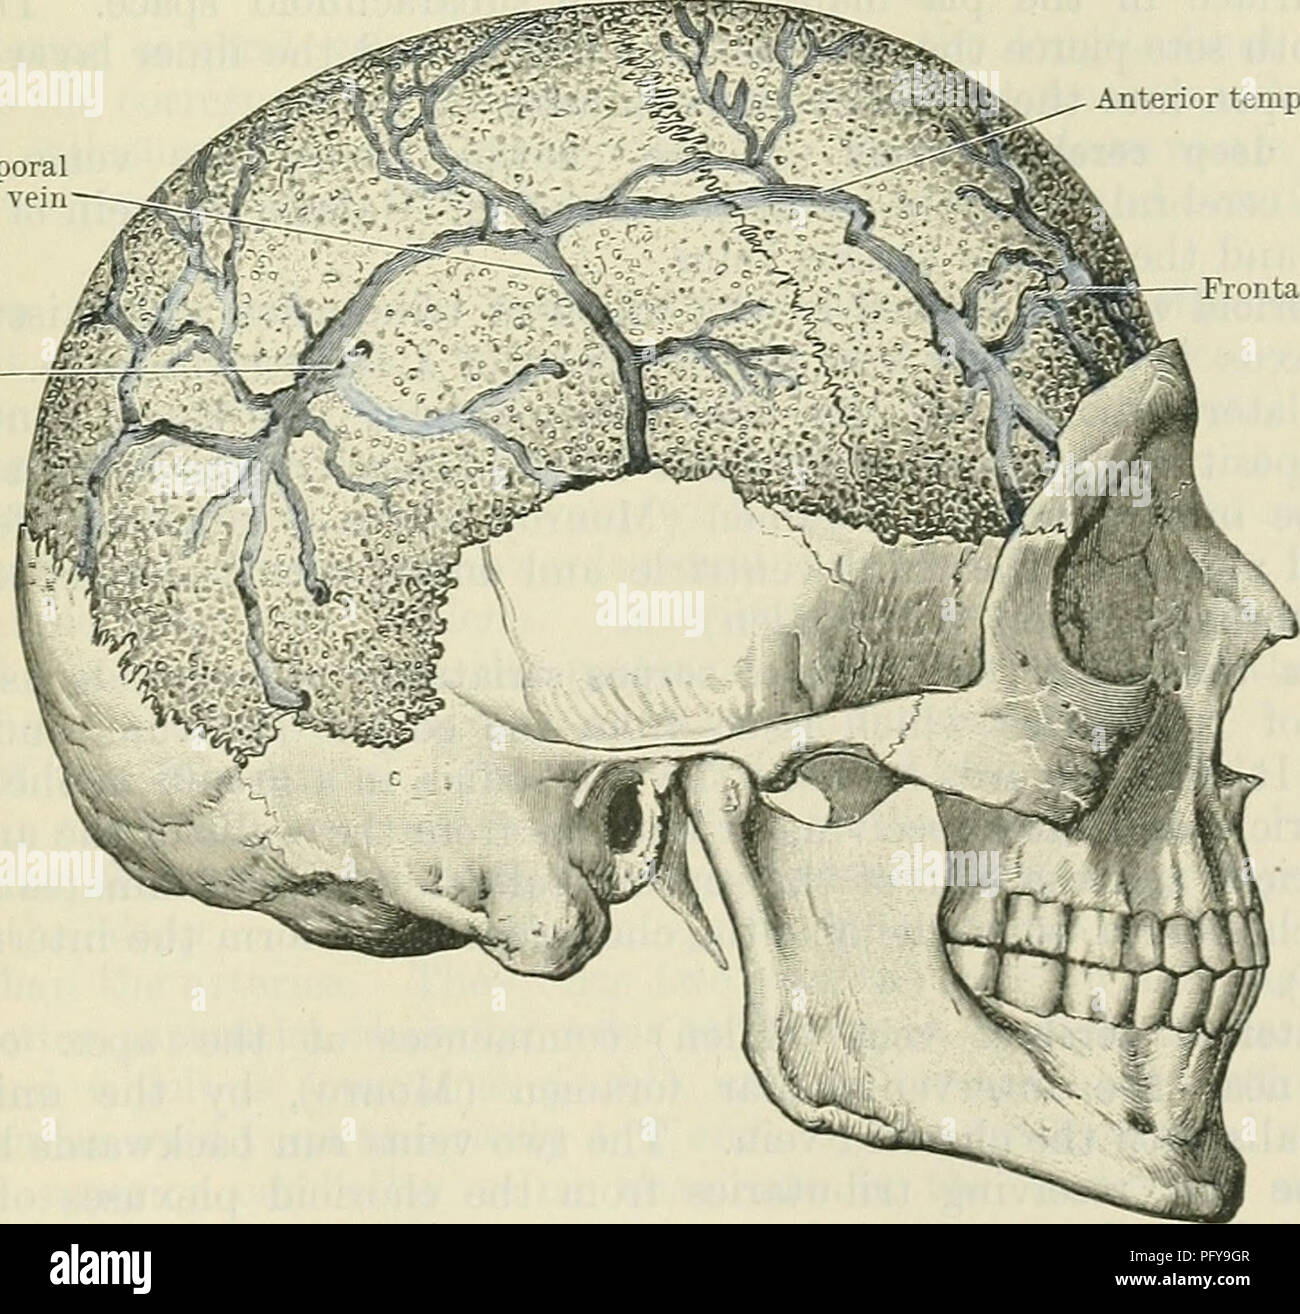 Cunninghams Text Book Of Anatomy Anatomy Diploic And Meningeal